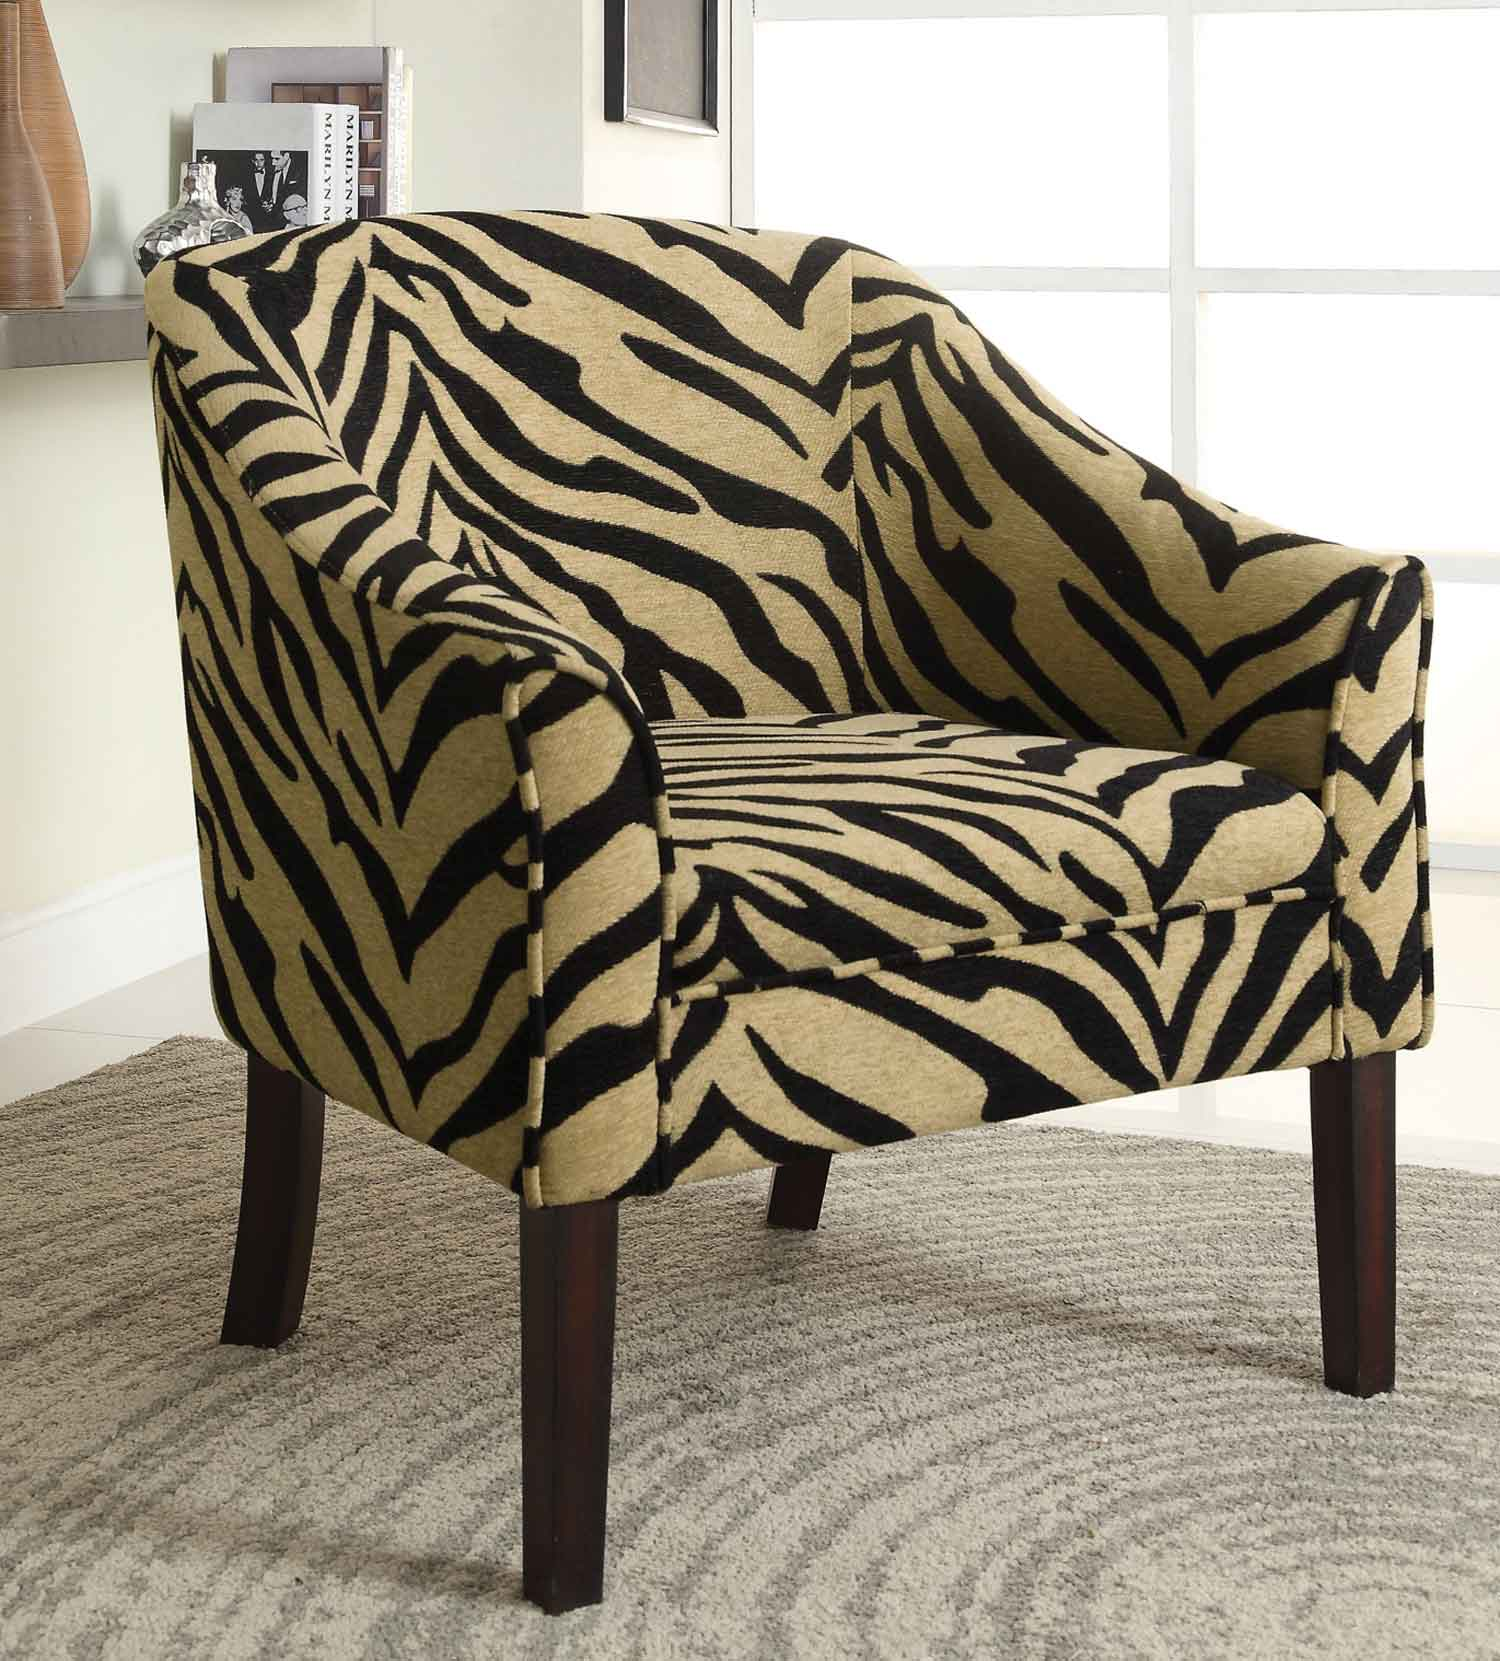 Coaster 902208 Accent Chair - Tiger Pattern